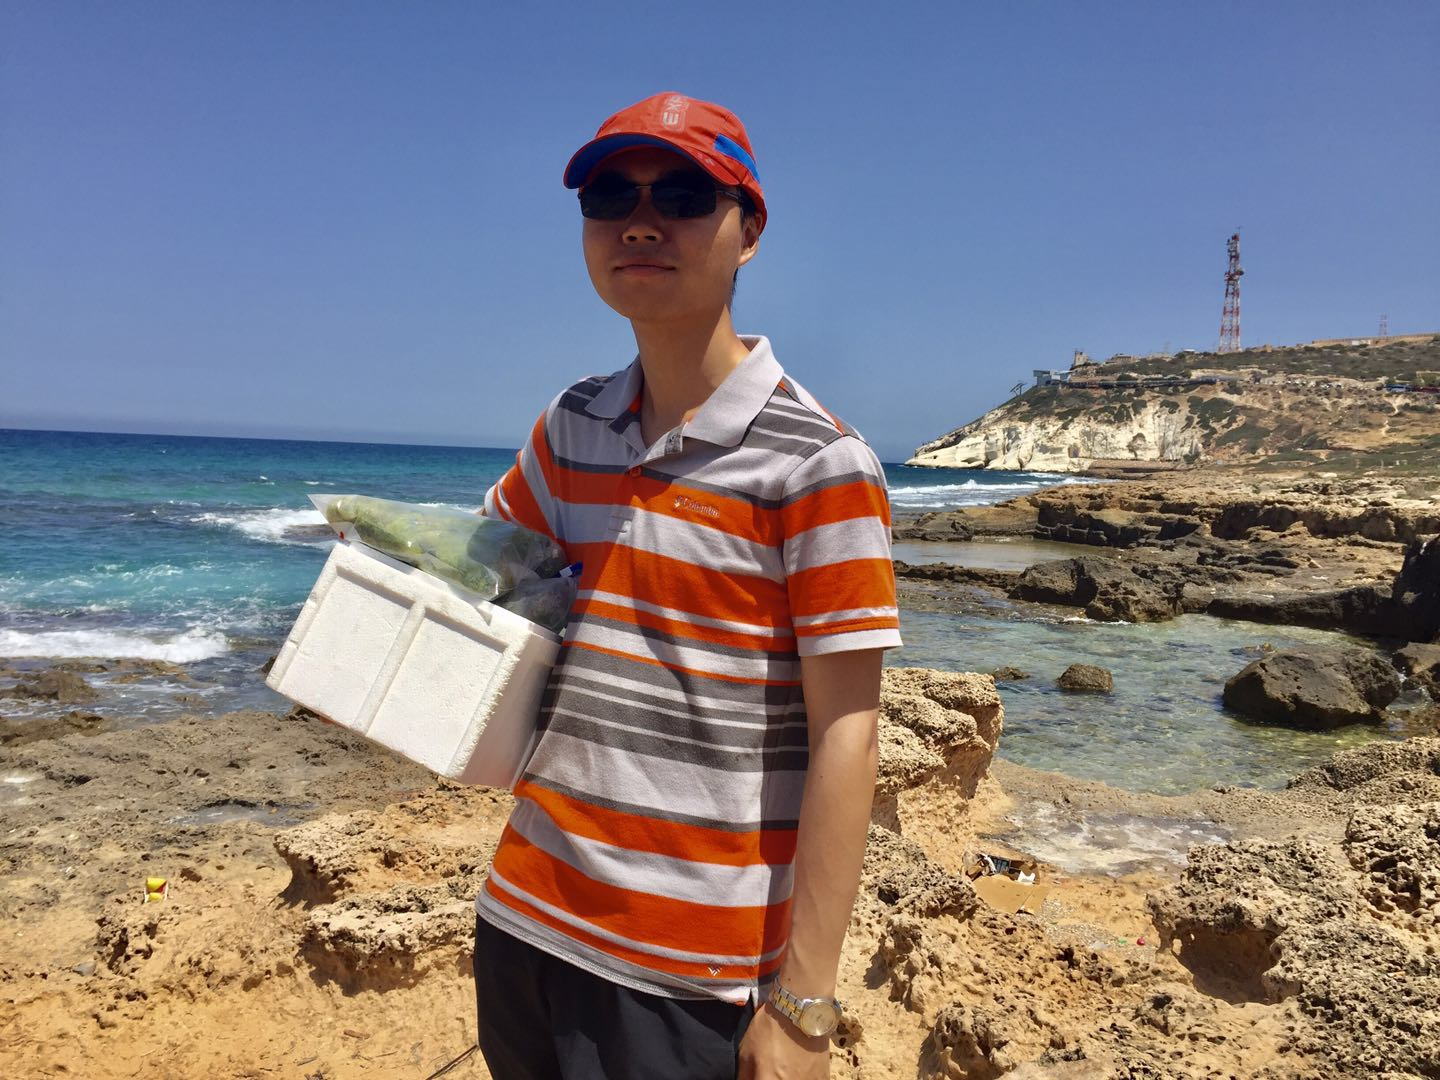 Image:  Jincheng Luo during algae research, at Rosh Hanikra, Israel